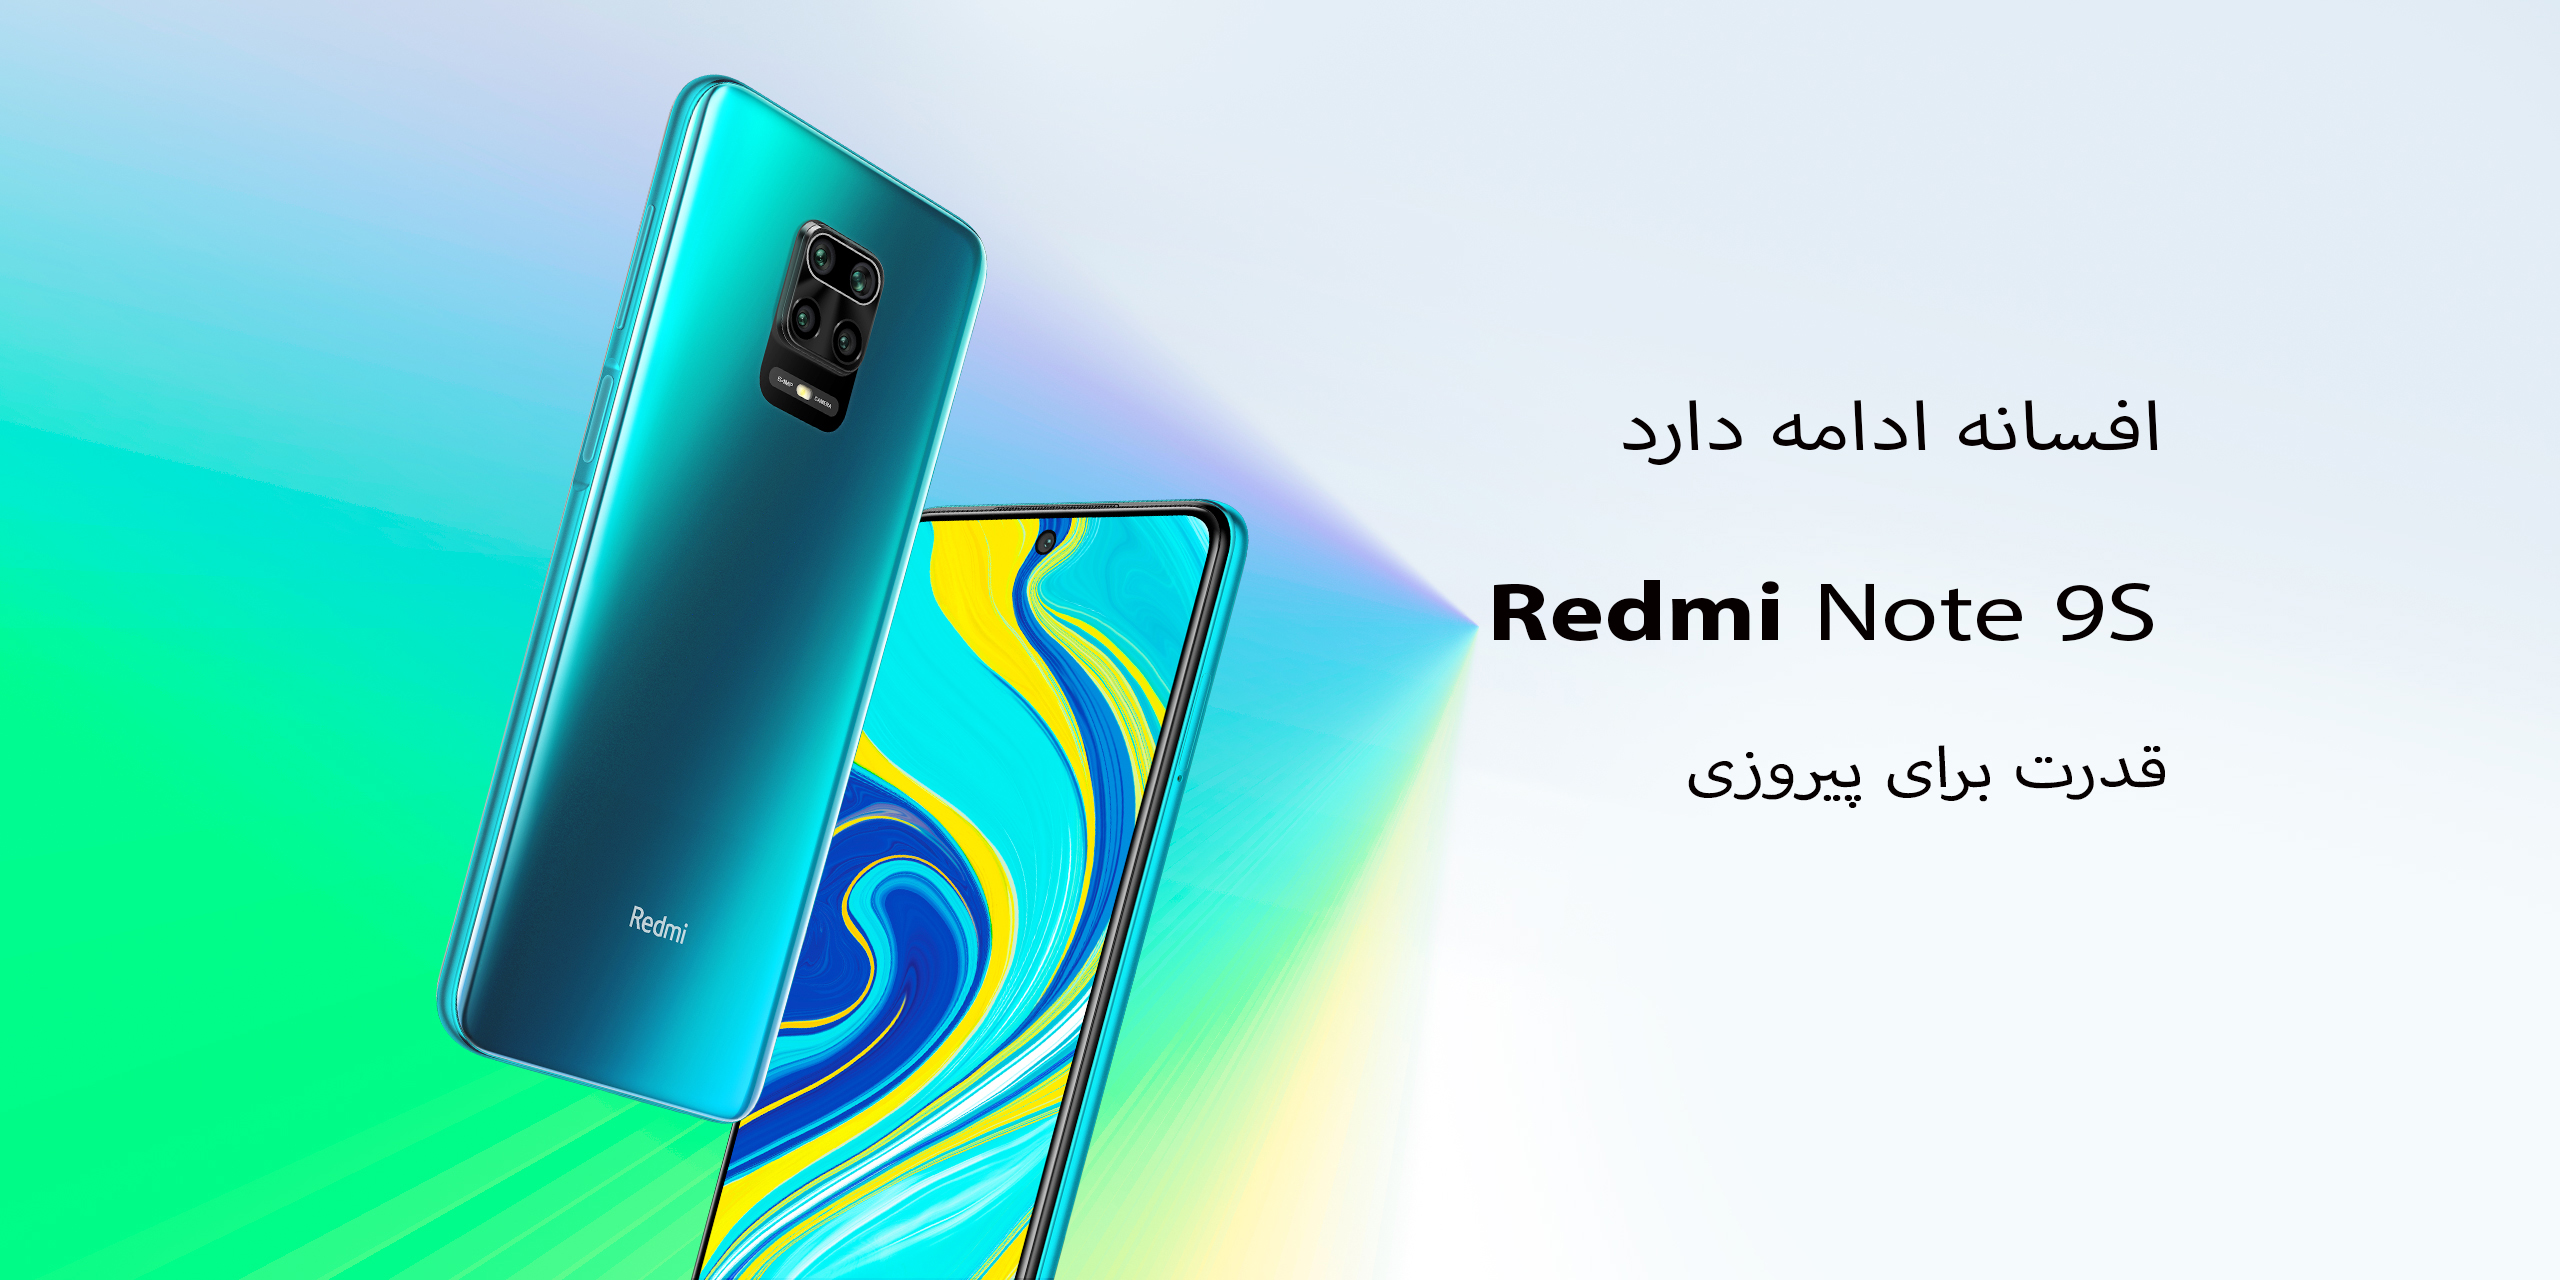 redmi note 9s picture